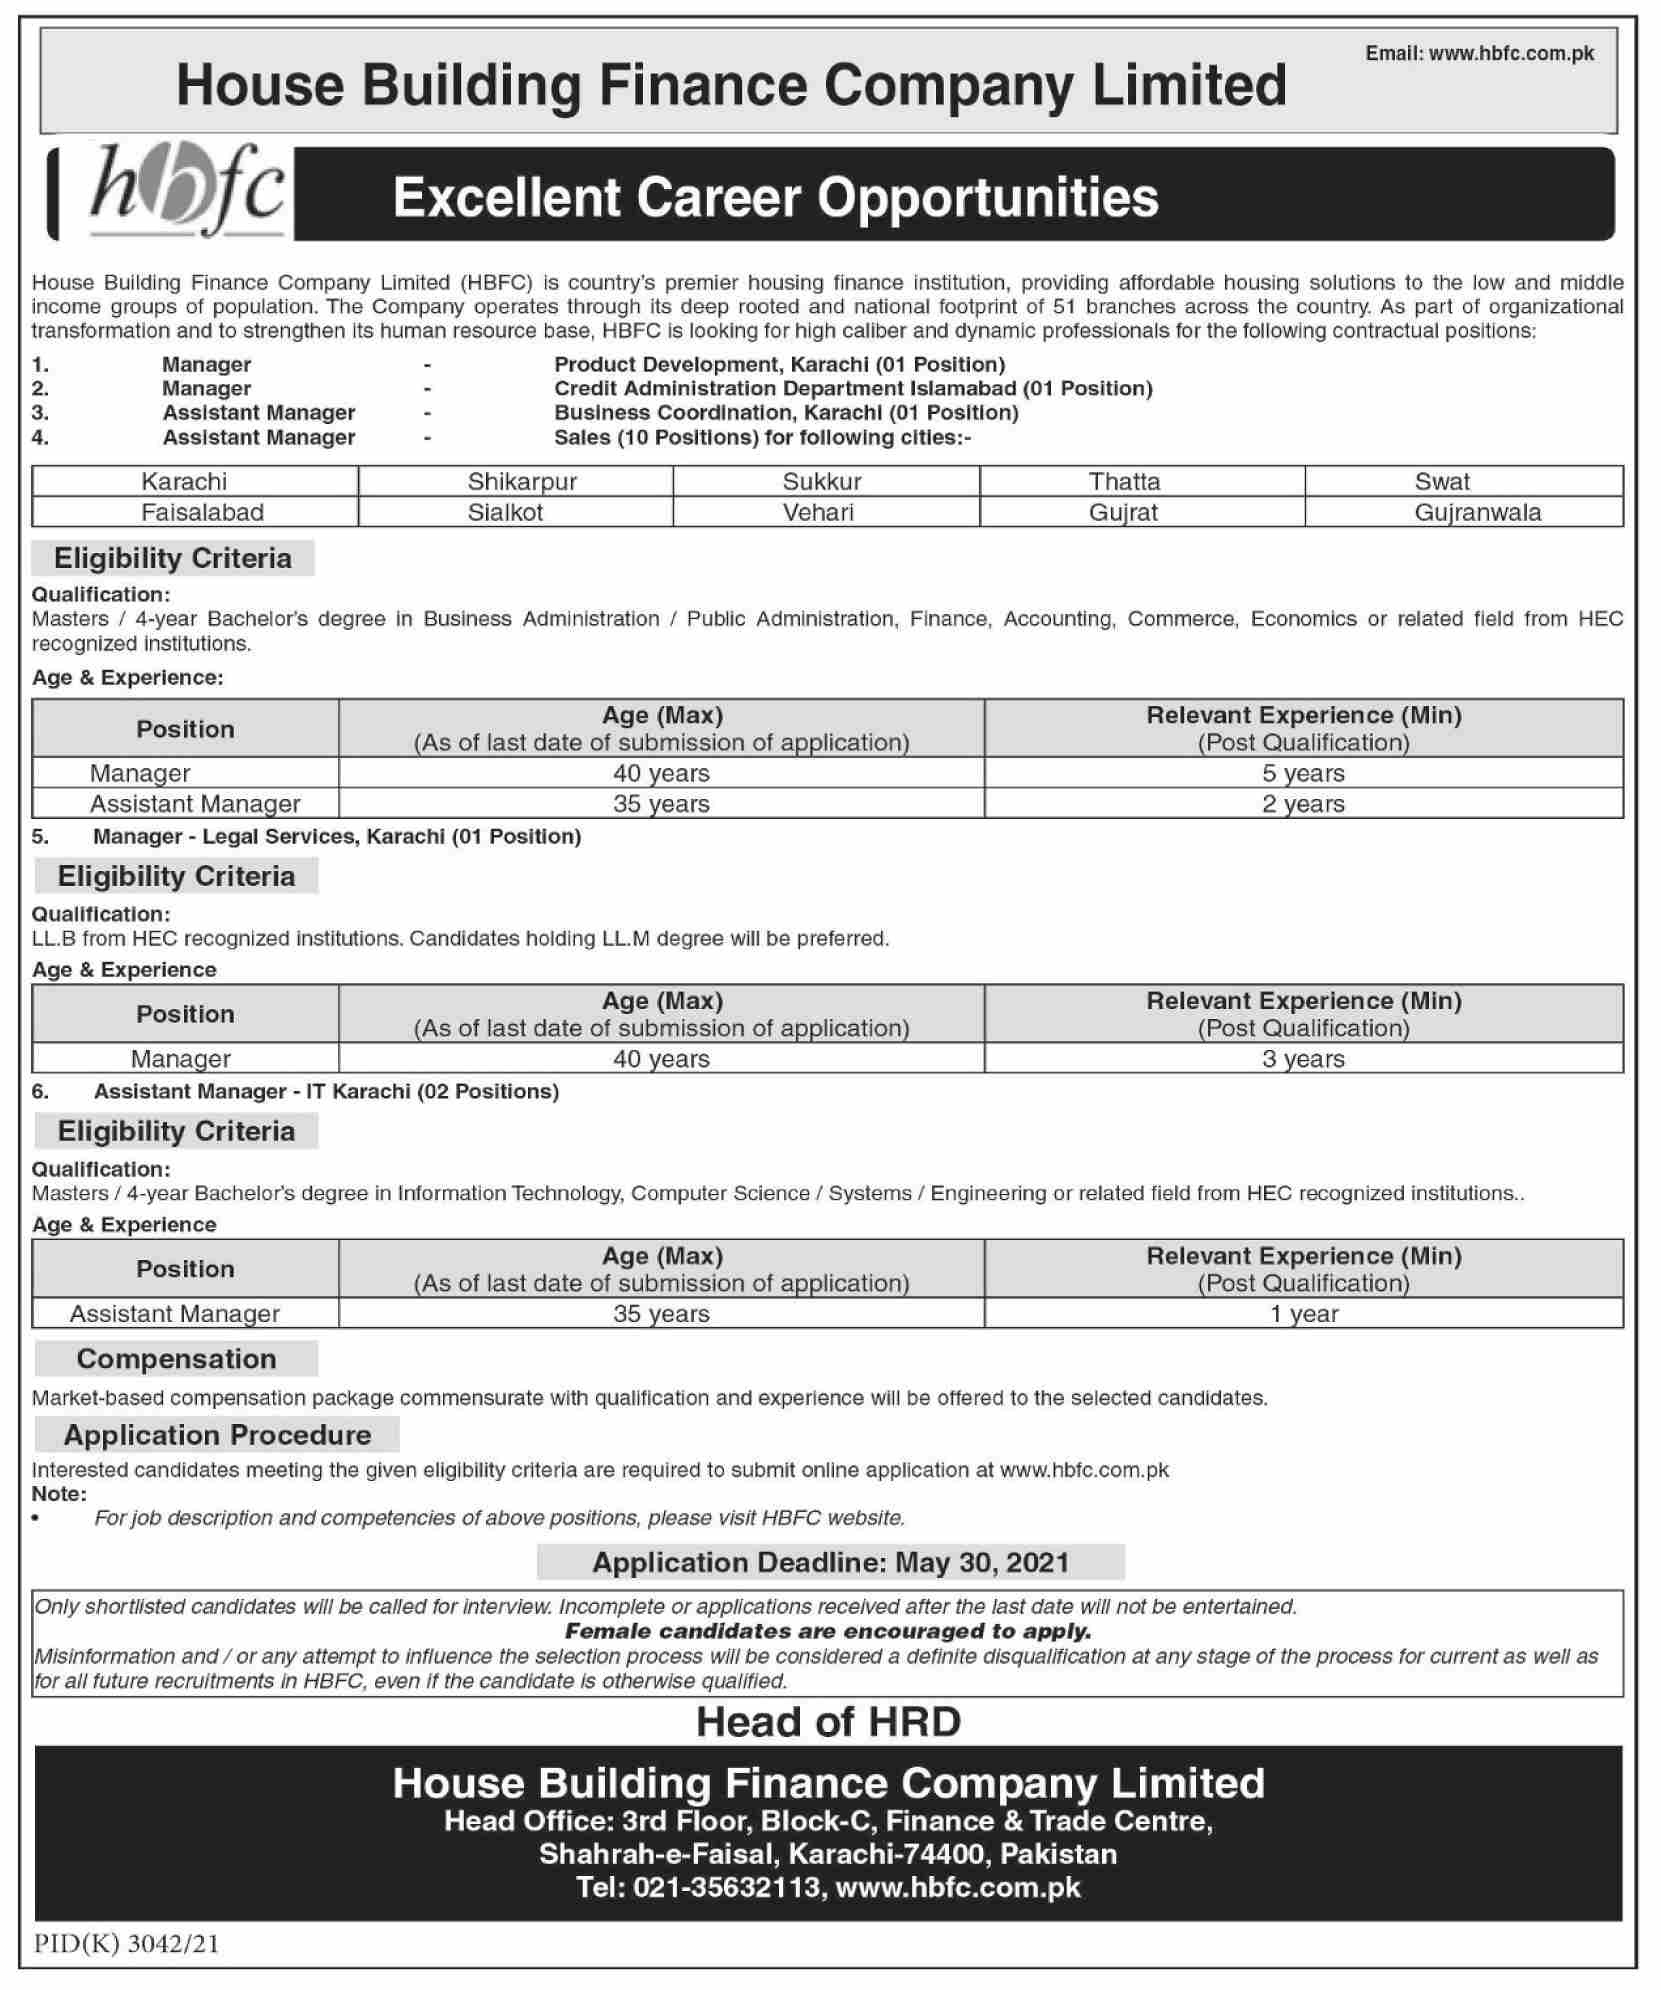 House Building Finance Company Limited Jobs 2021